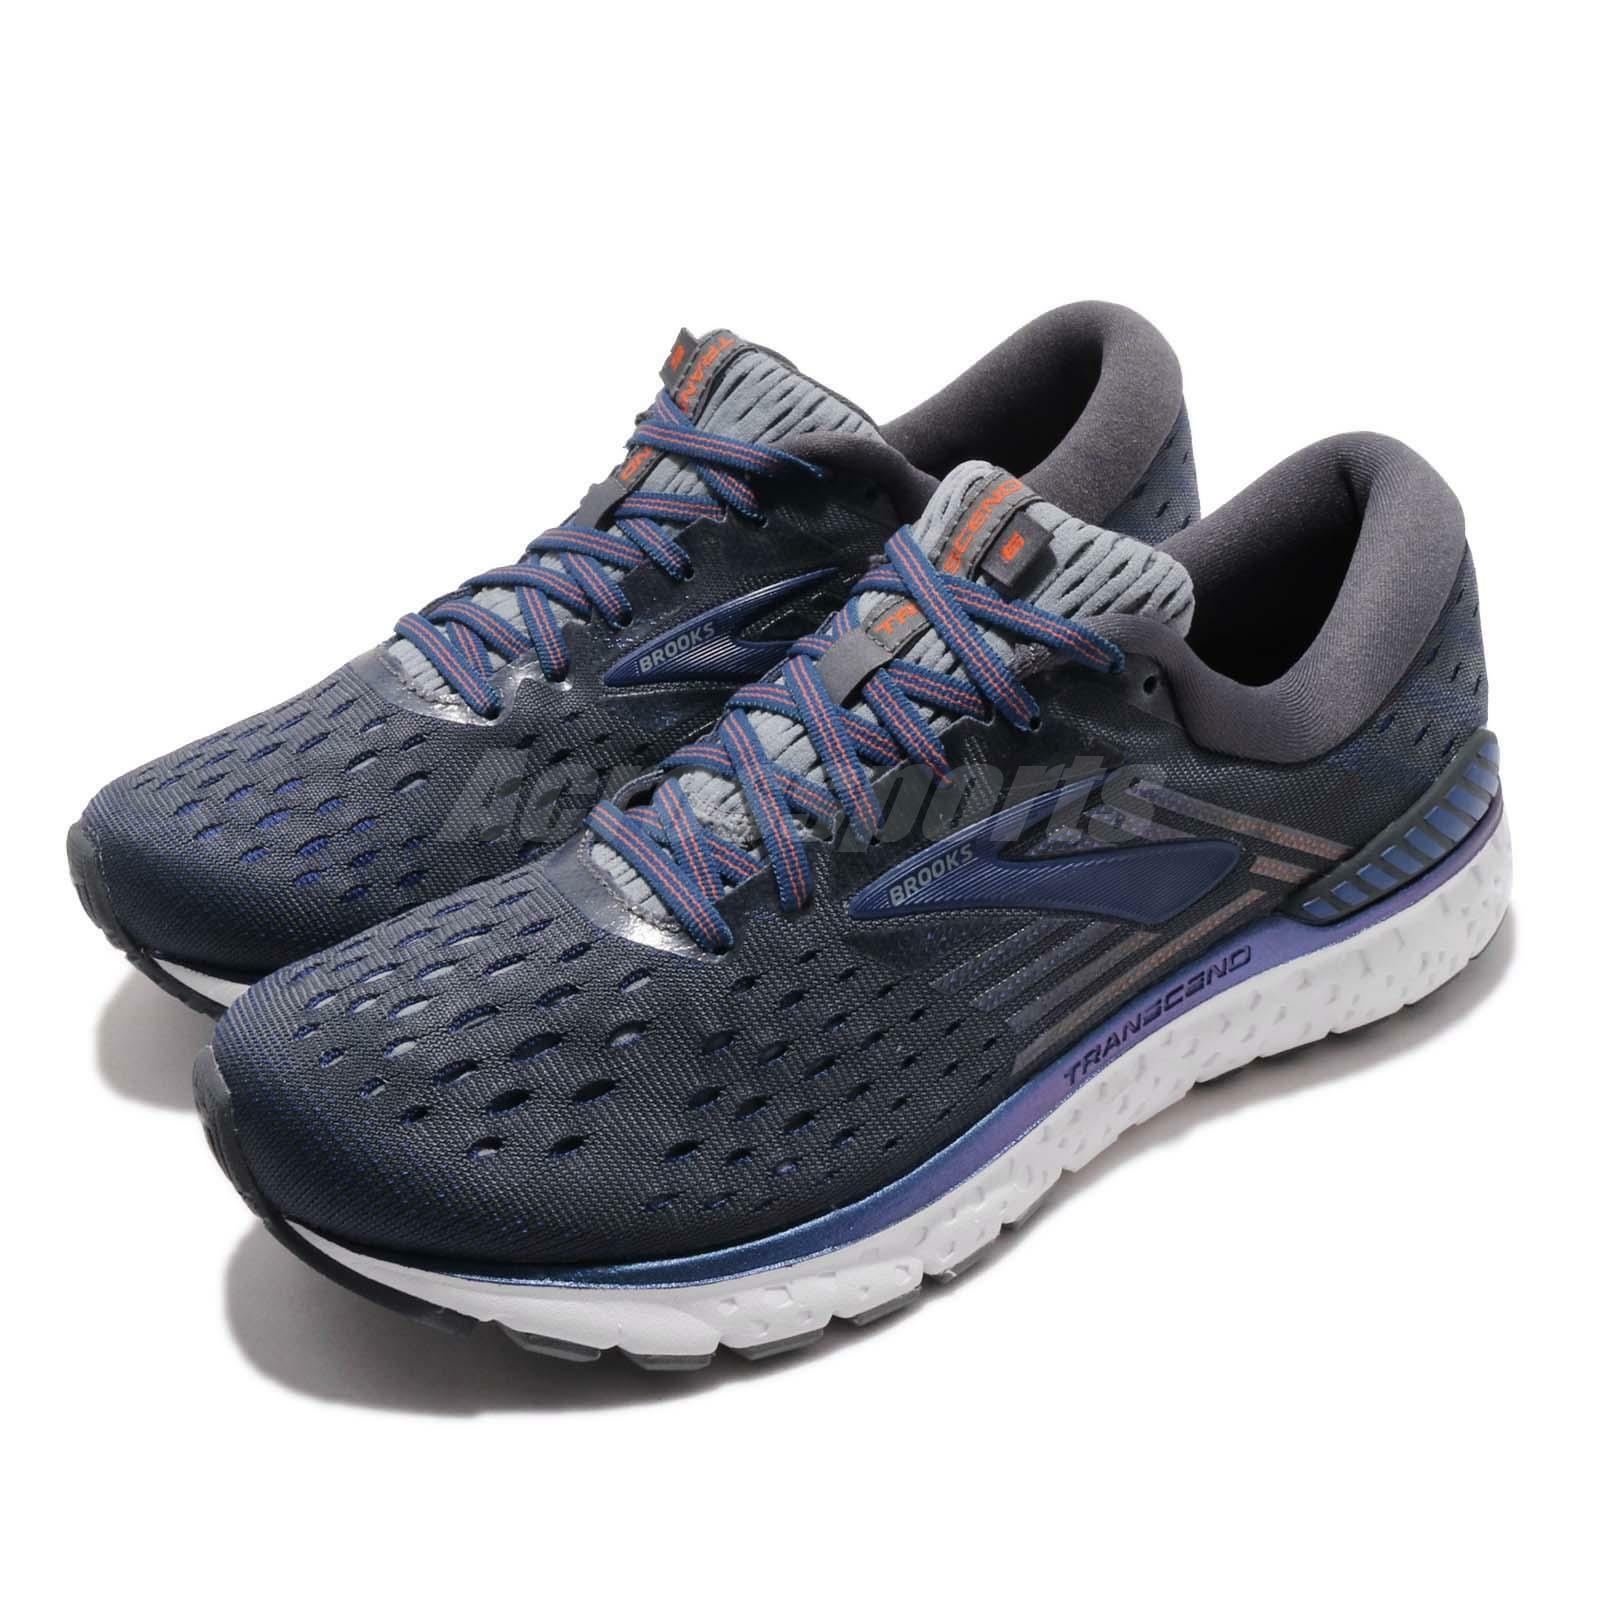 Brooks Transcend 6 Ebony bluee Mandarin  Men Running shoes Sneakers 110299 1D  for sale